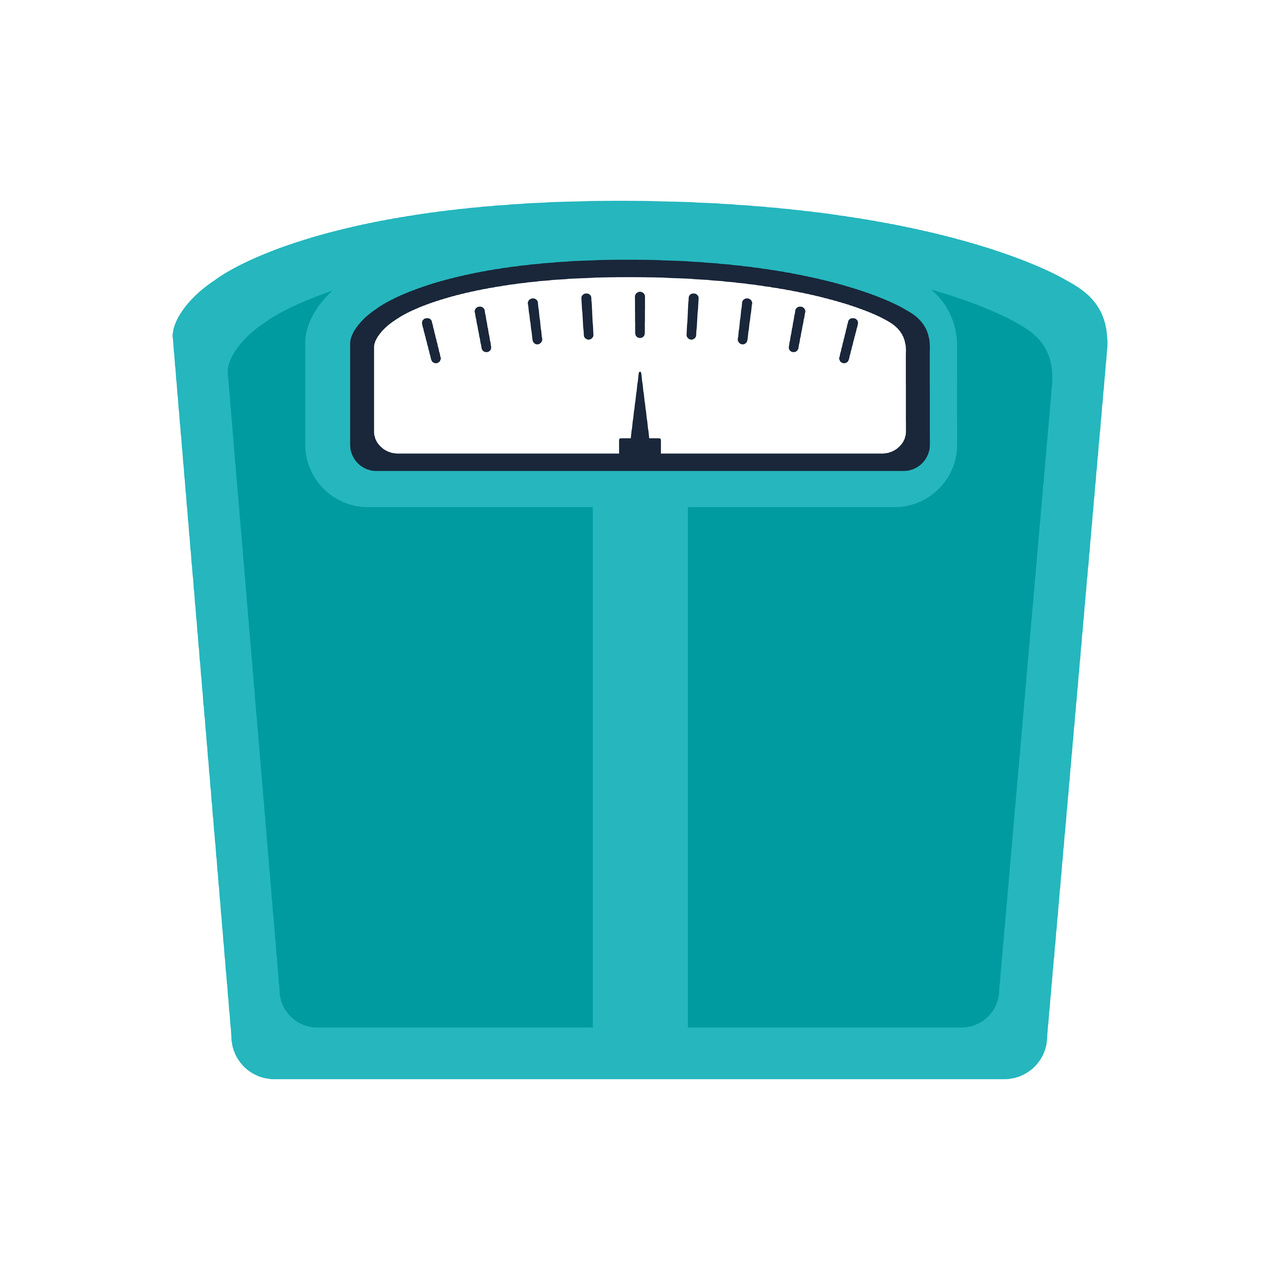 Obesity More Common in Those With Psoriasis Alone, Compared With Those With Wider Disease